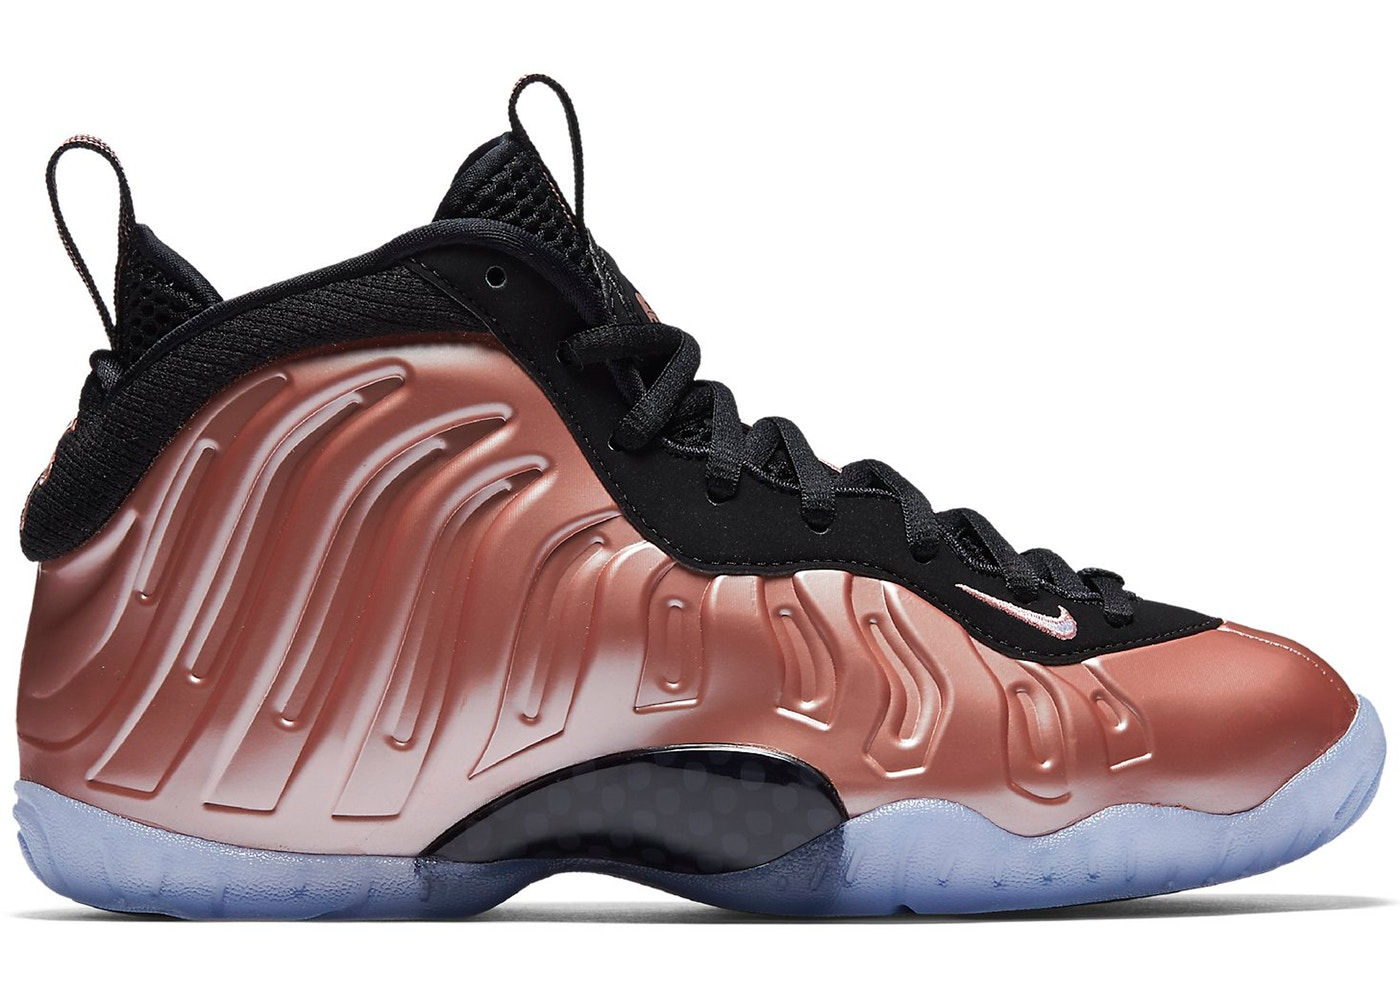 553b24cdf9979 Air Foamposite One Rust Pink (GS) - 644791-601